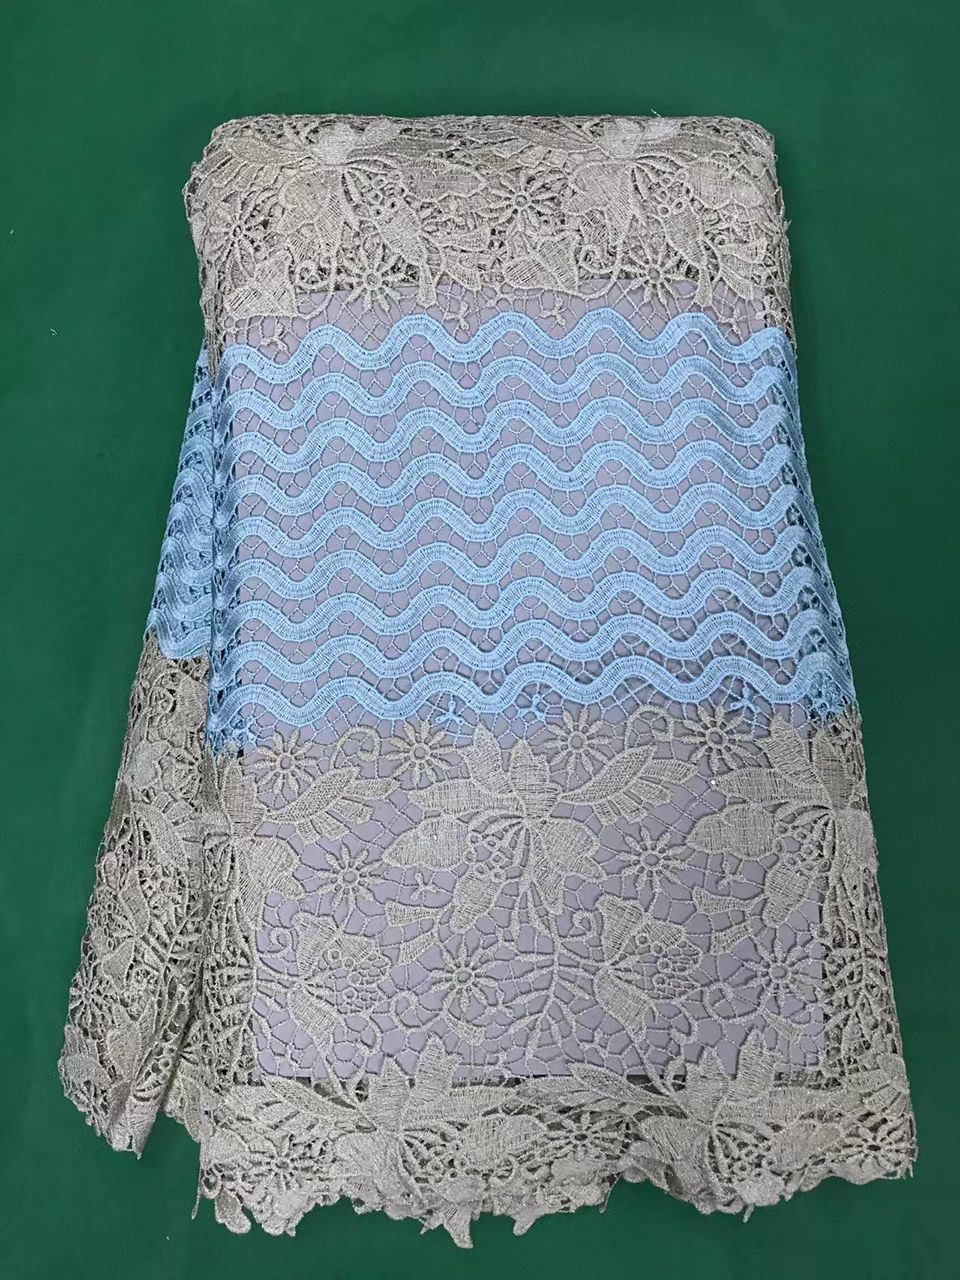 AFRICAN CORD LACE FABRIC GUIPURE DENTELLE SWISS LACE EMBROIDERY 5 YARDS NIGERIA